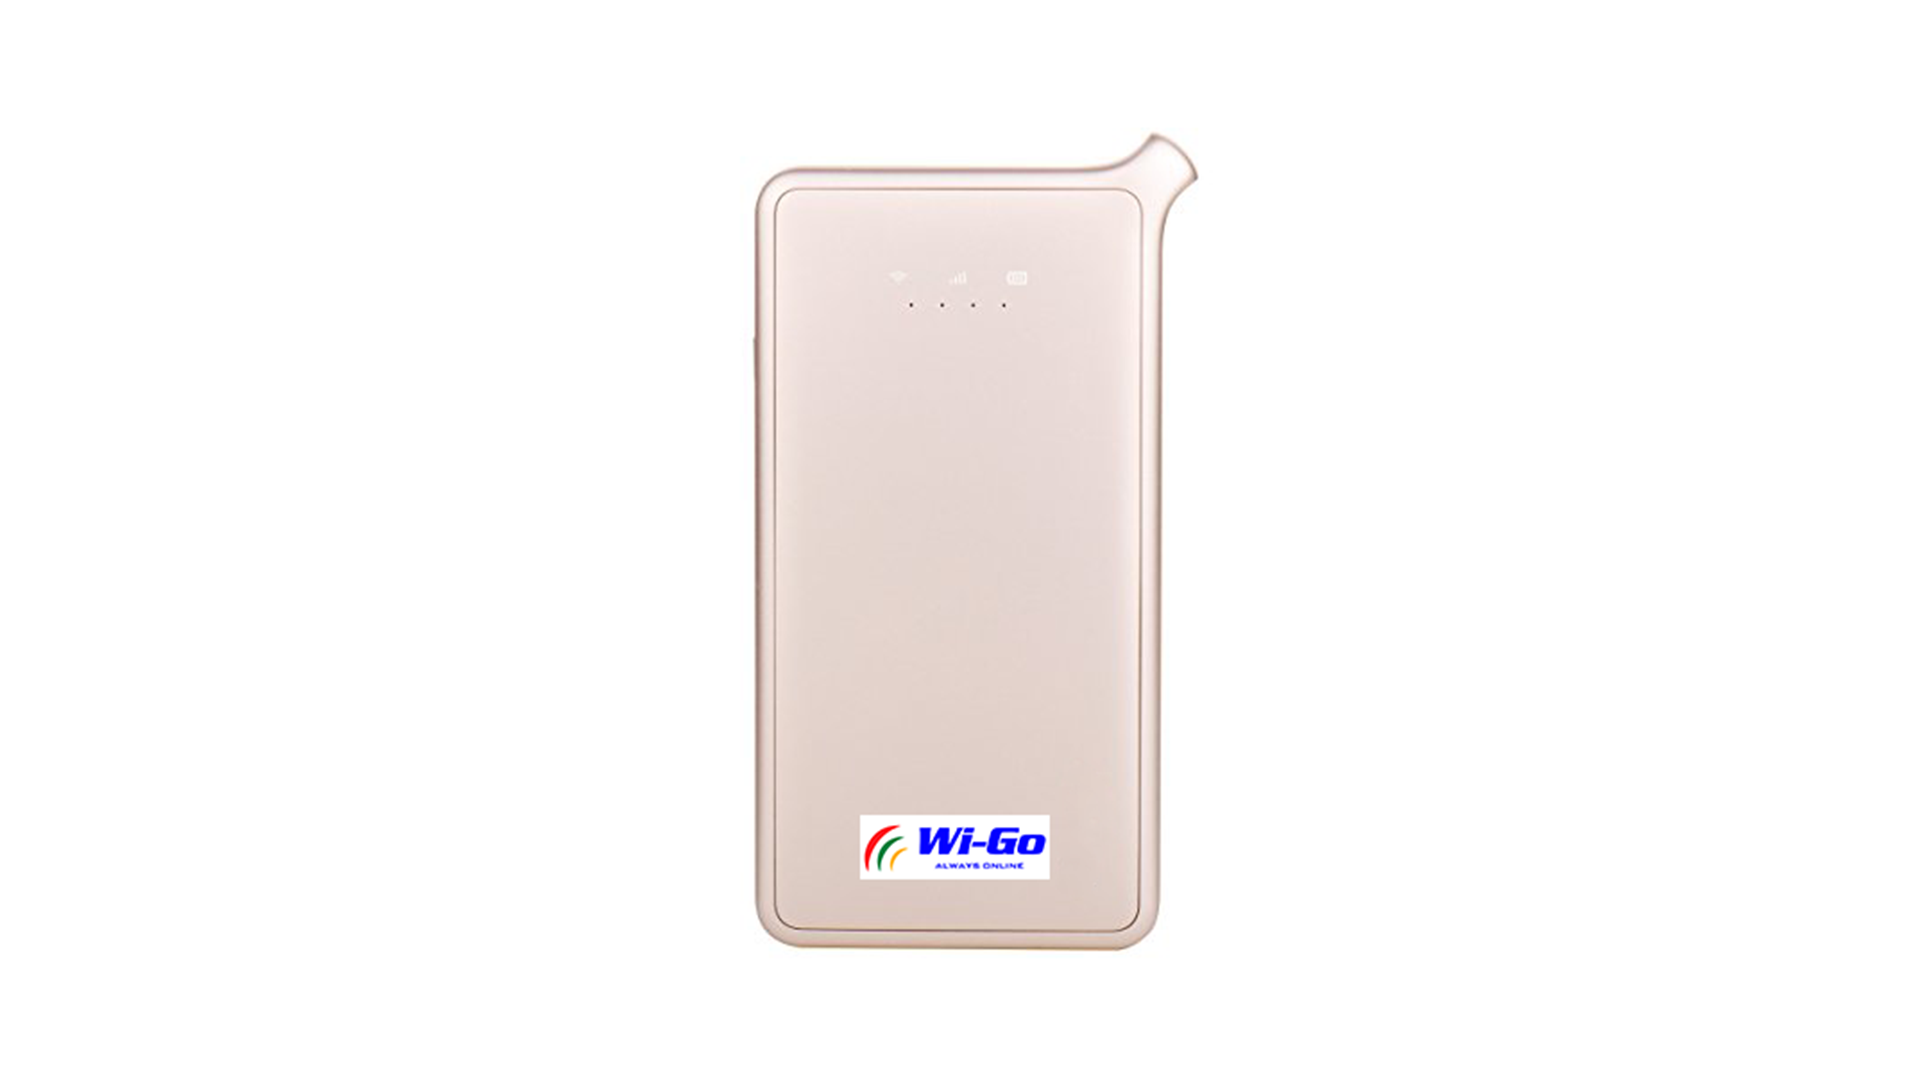 The Netherlands Europe Portable Wi-Fi Rental (Pick-Up at Taiwan Taoyuan International Airport or Delivery in Taiwan)